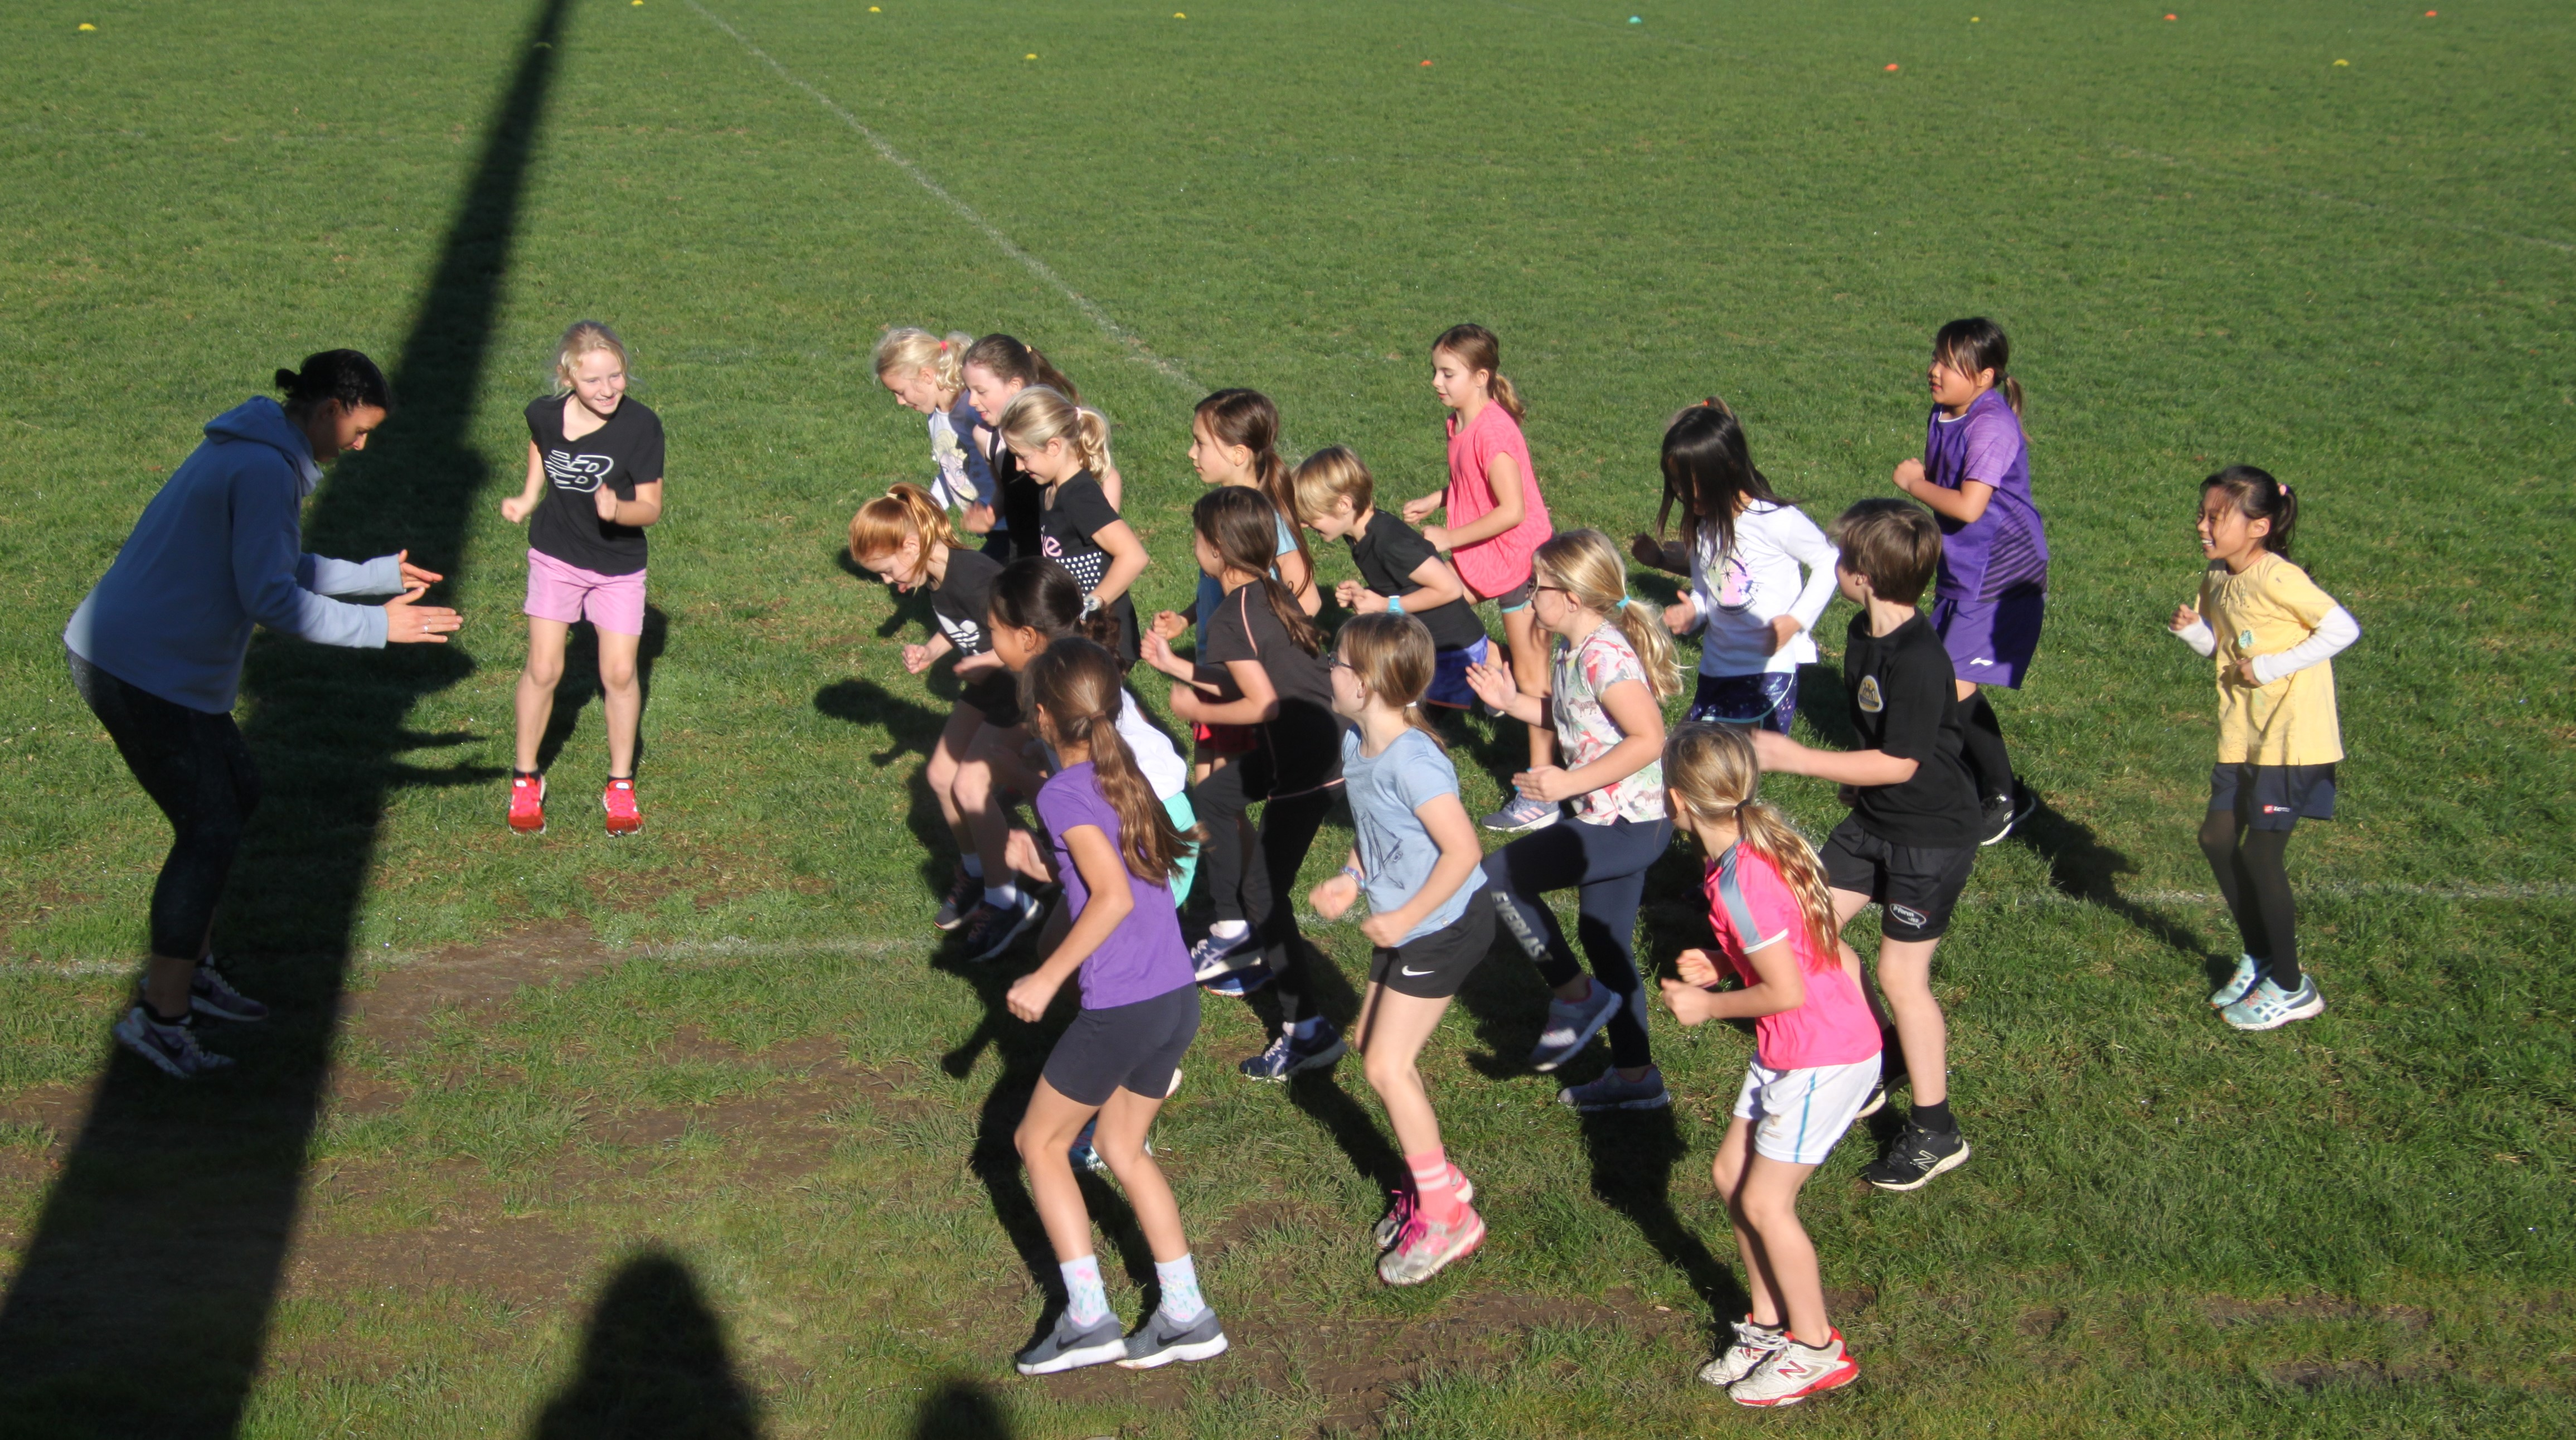 Year 4 Girls Challenge 4 warm up